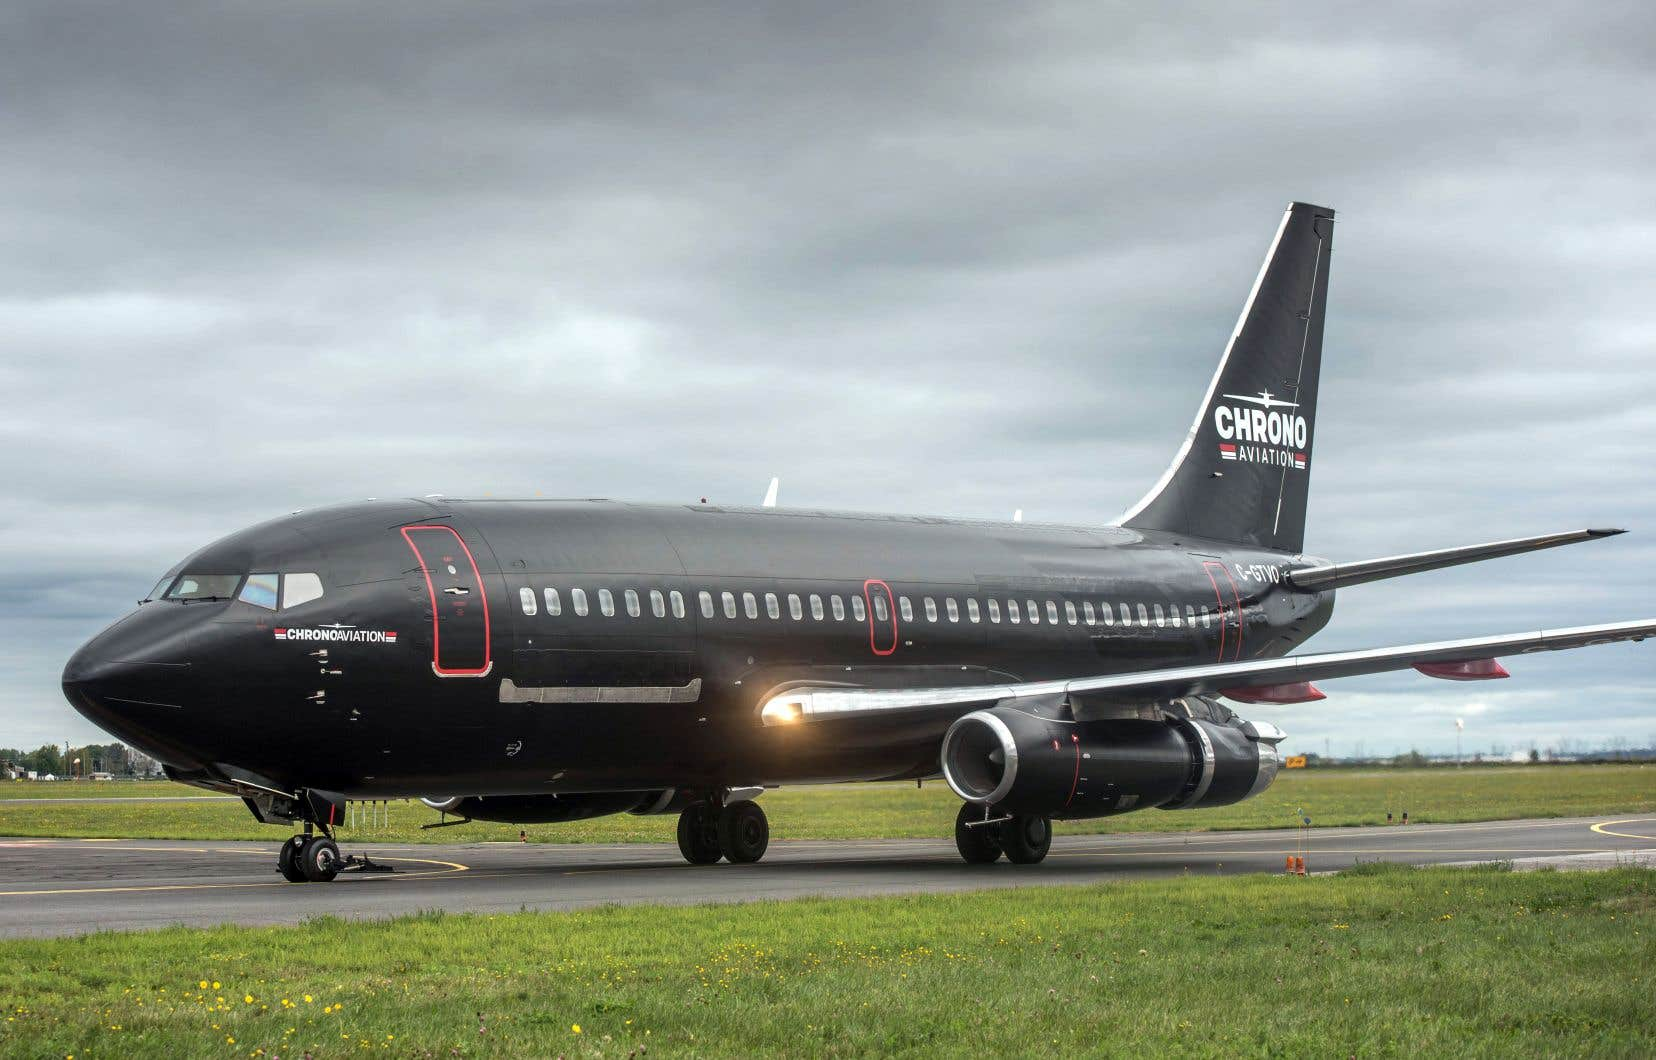 Le Boeing 737-200 de la compagnie Chrono Aviation, ici photographié à l'aéoroport de Saint-Hubert, dispose d'un rayon d'action de 2700 kilomètres et peut desservir les régions très éloignées du Nord-du-Québec et du Nunavut.